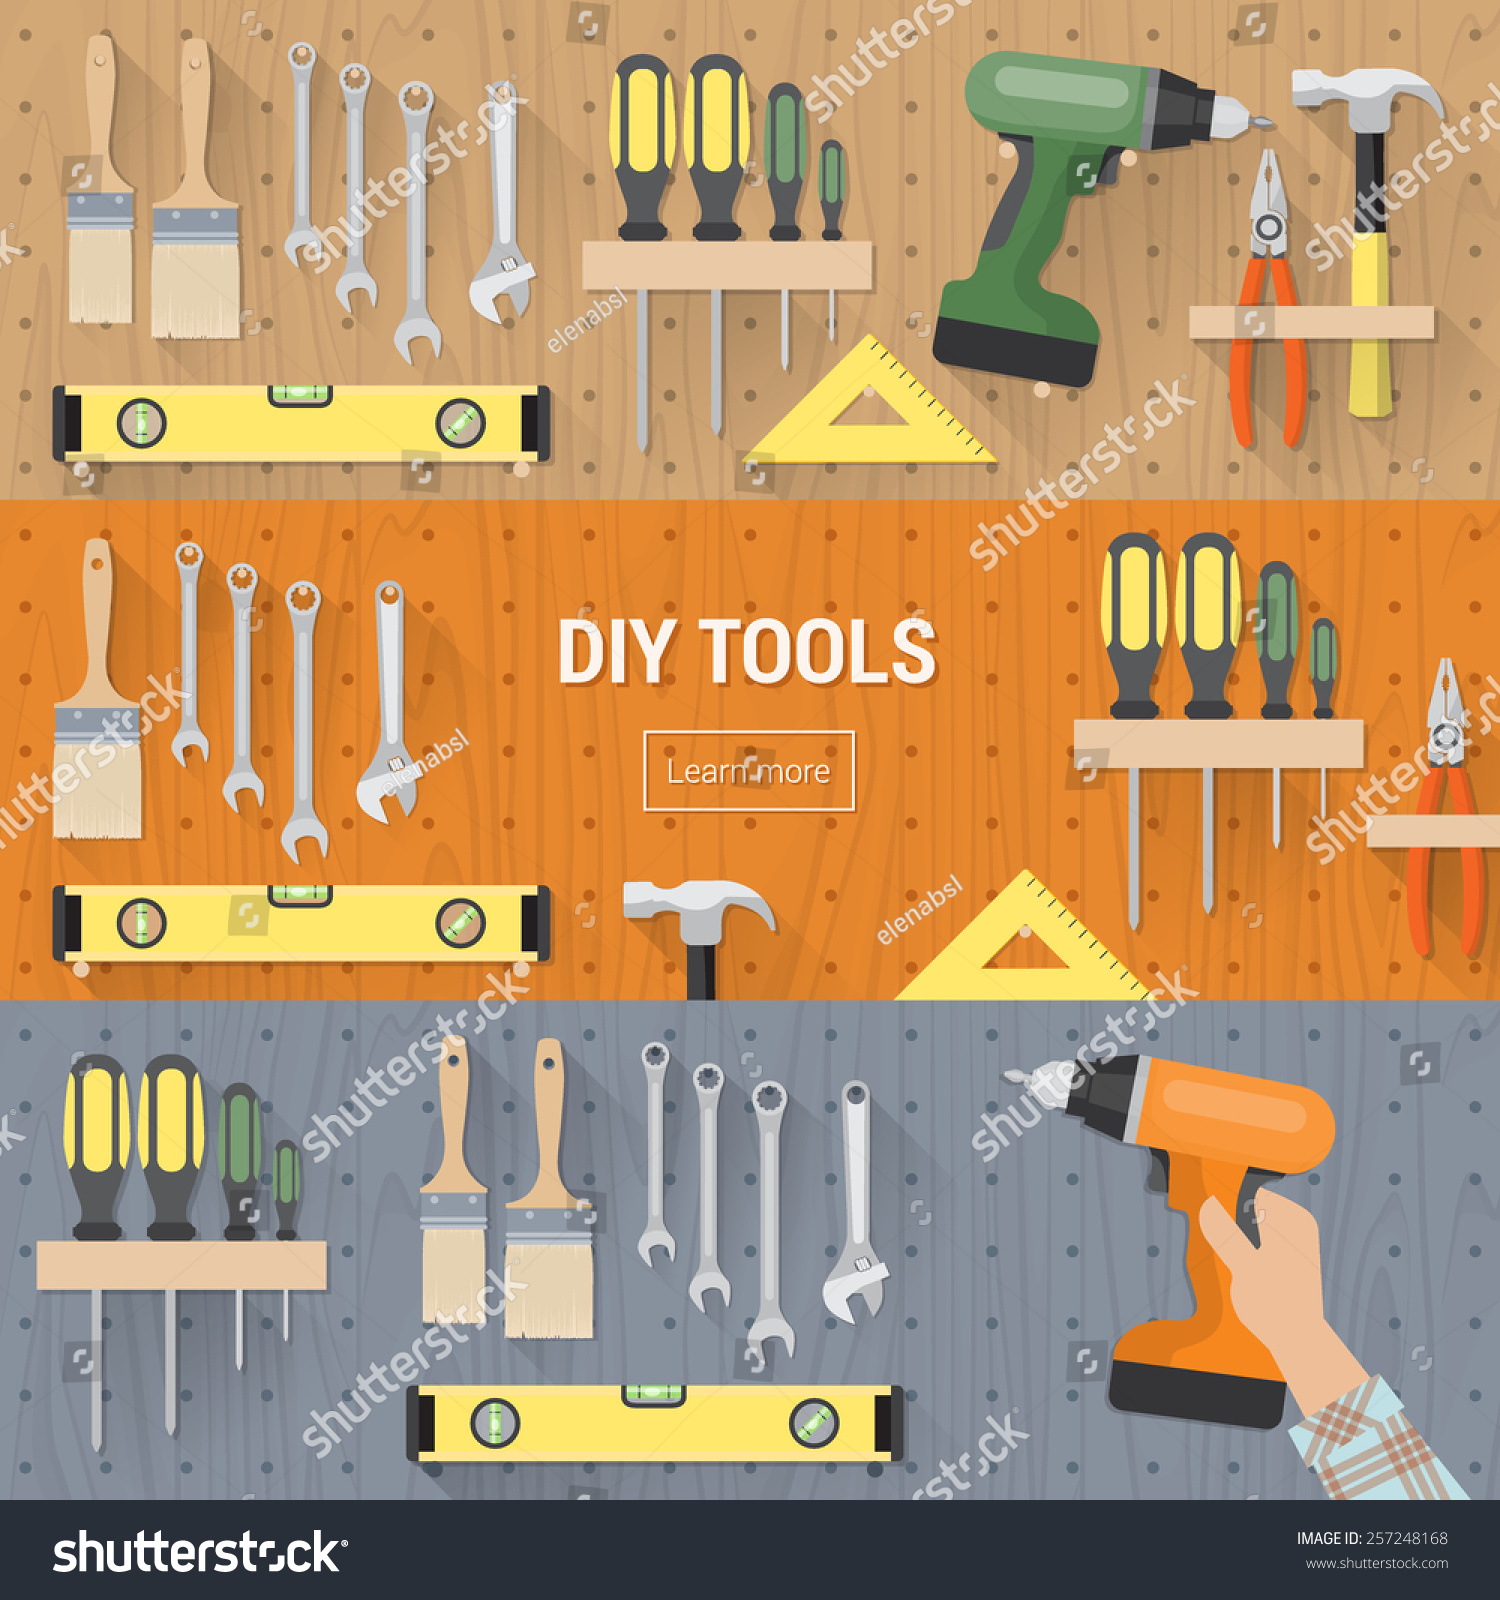 Carpentry workshop: do-it-yourself home business